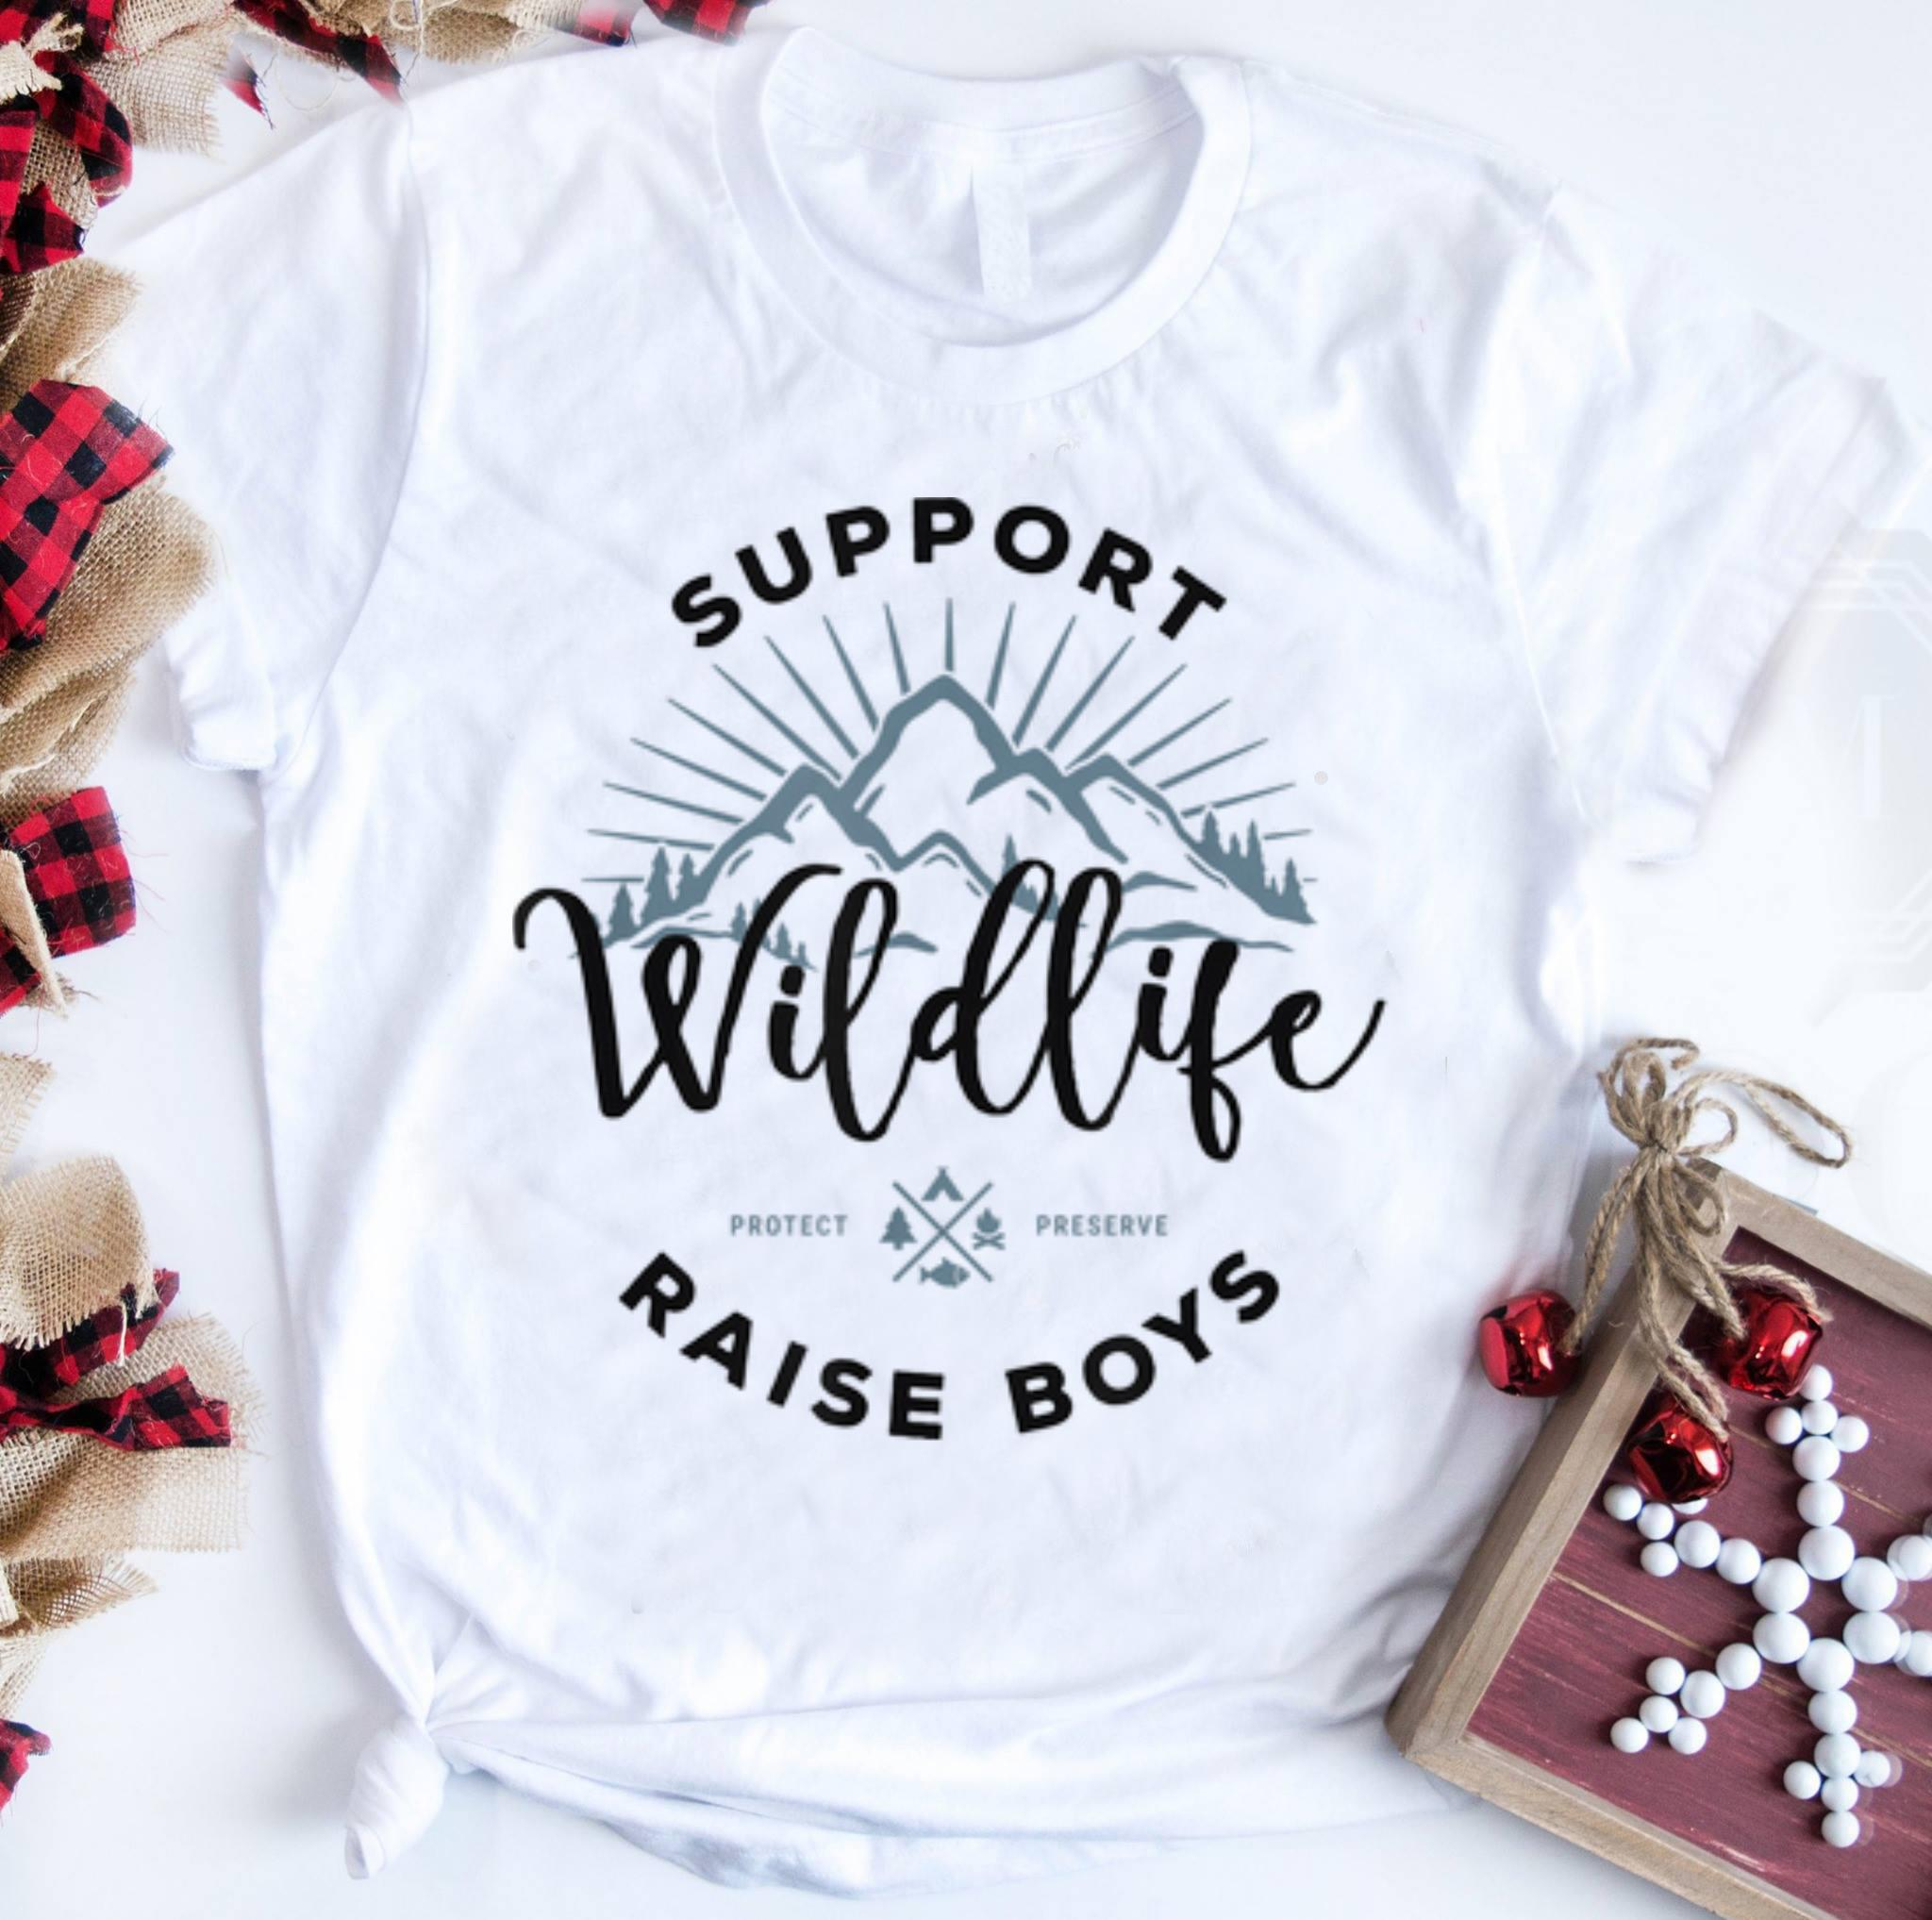 Top Support Wildlife Raise boys shirt